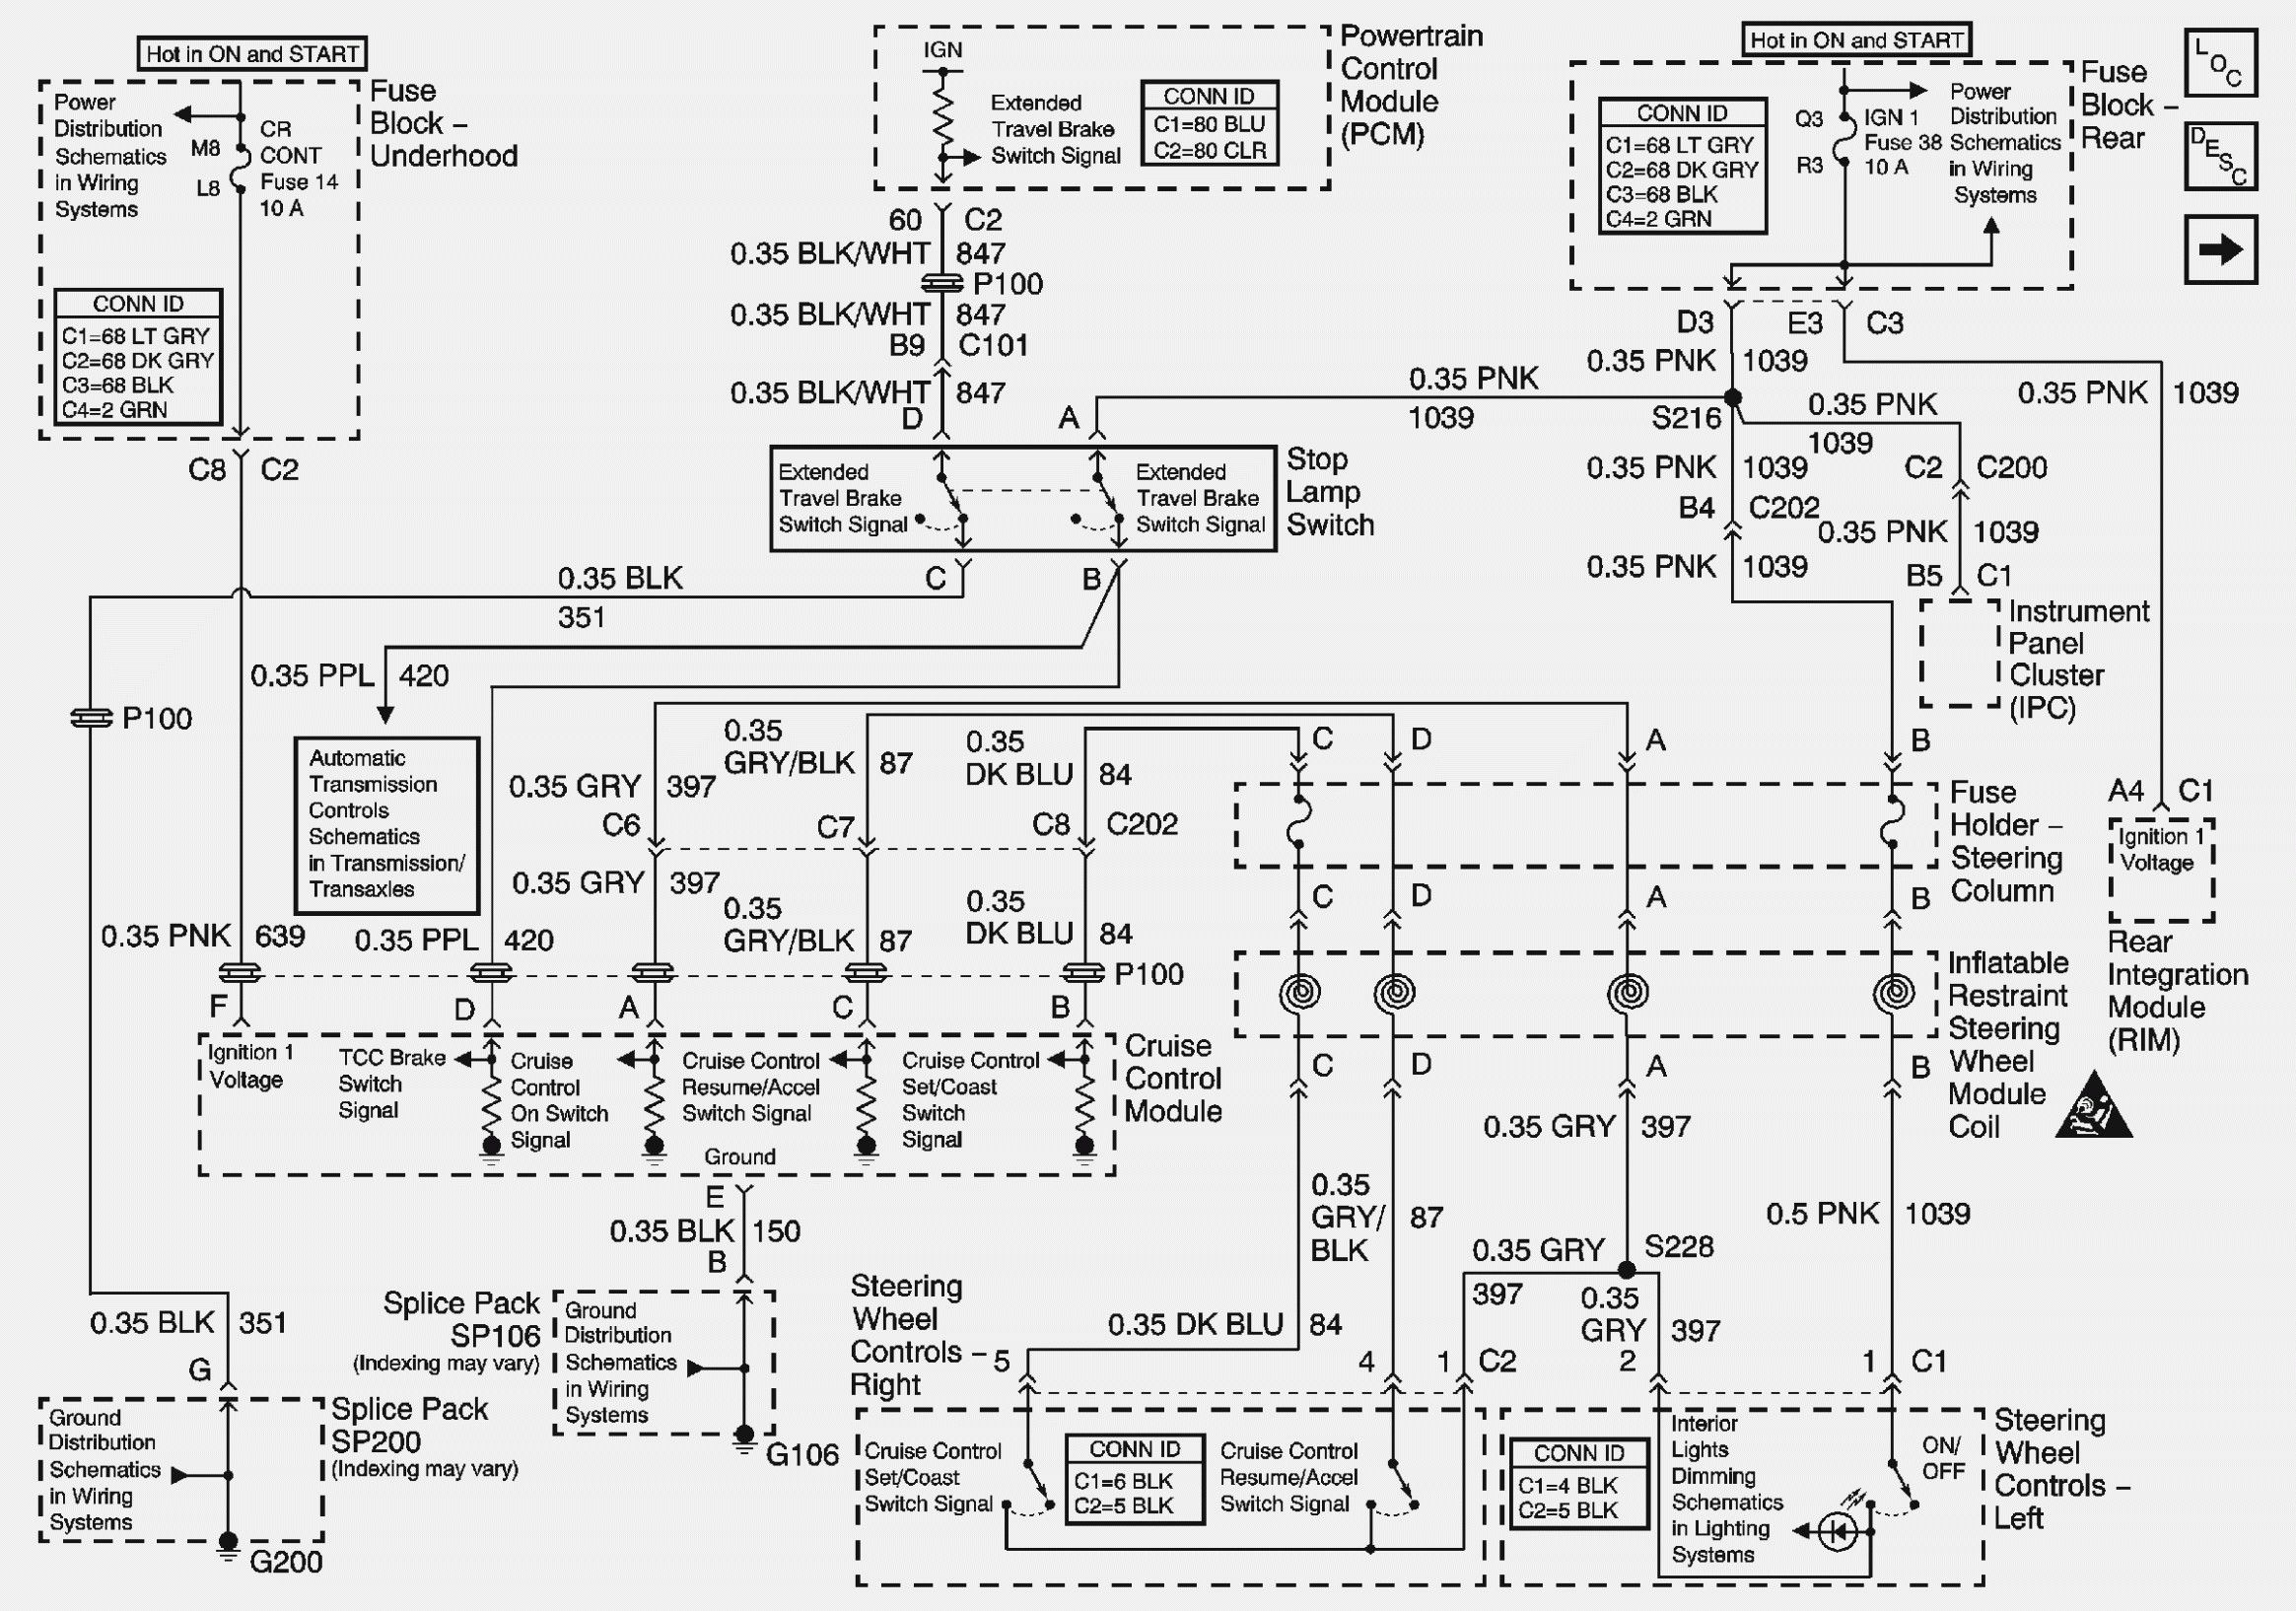 [ZHKZ_3066]  97 Audi A4 Wiring Diagram Hobbs Hour Meter Wiring Diagram -  pump.salak.astrea-construction.fr | Wiring Diagram Radio 98 Audi A4 Quattro |  | ASTREA CONSTRUCTION